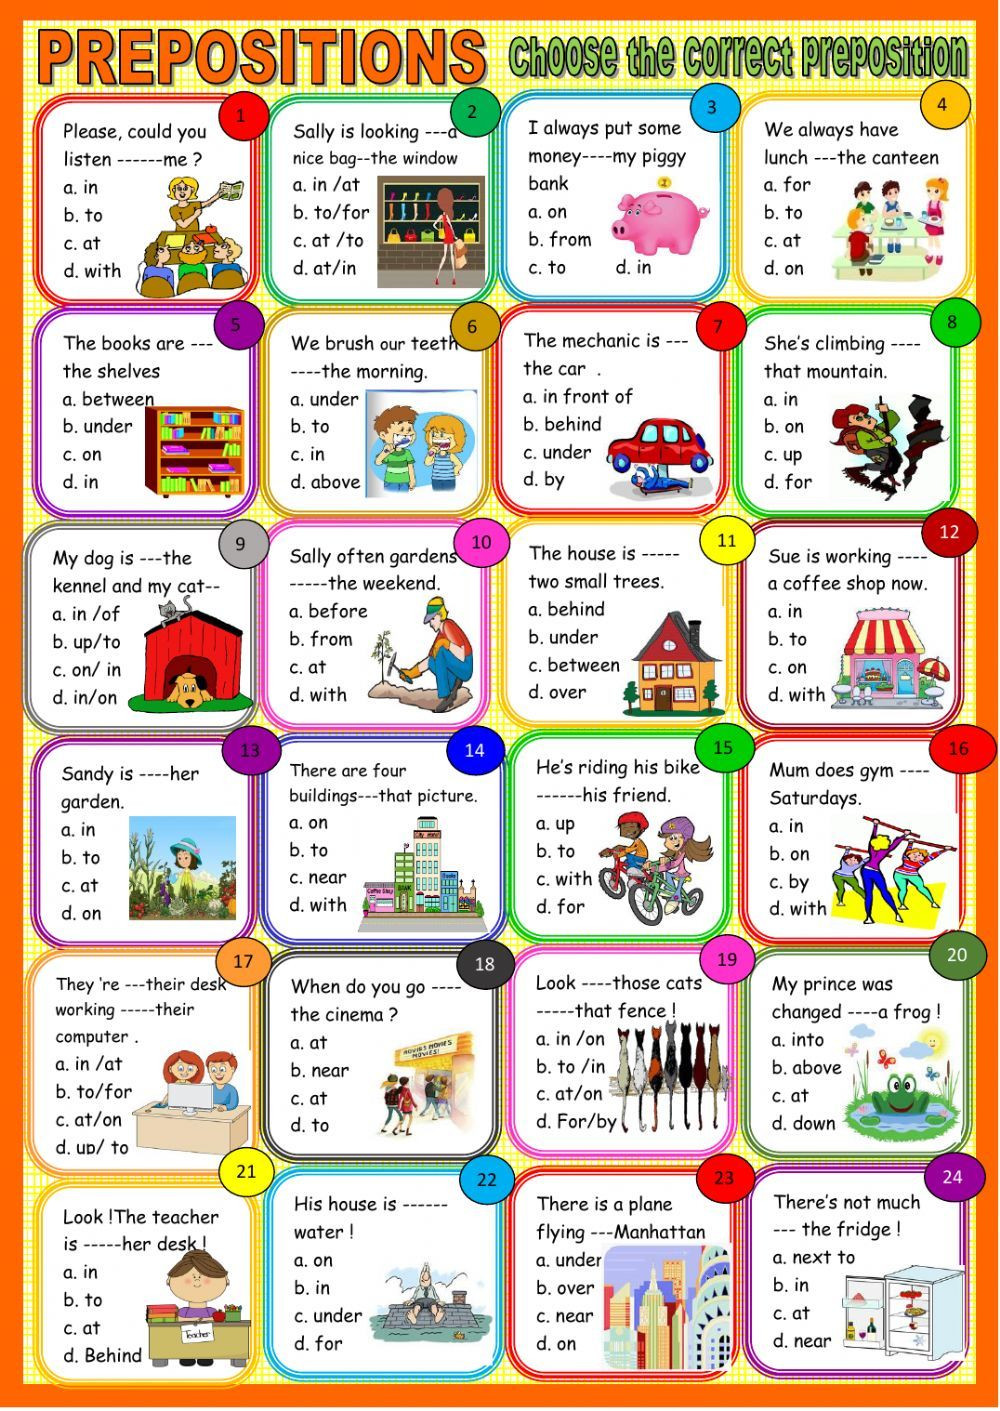 Prepositions Worksheets Middle School Prepositions All Types Interactive and Able